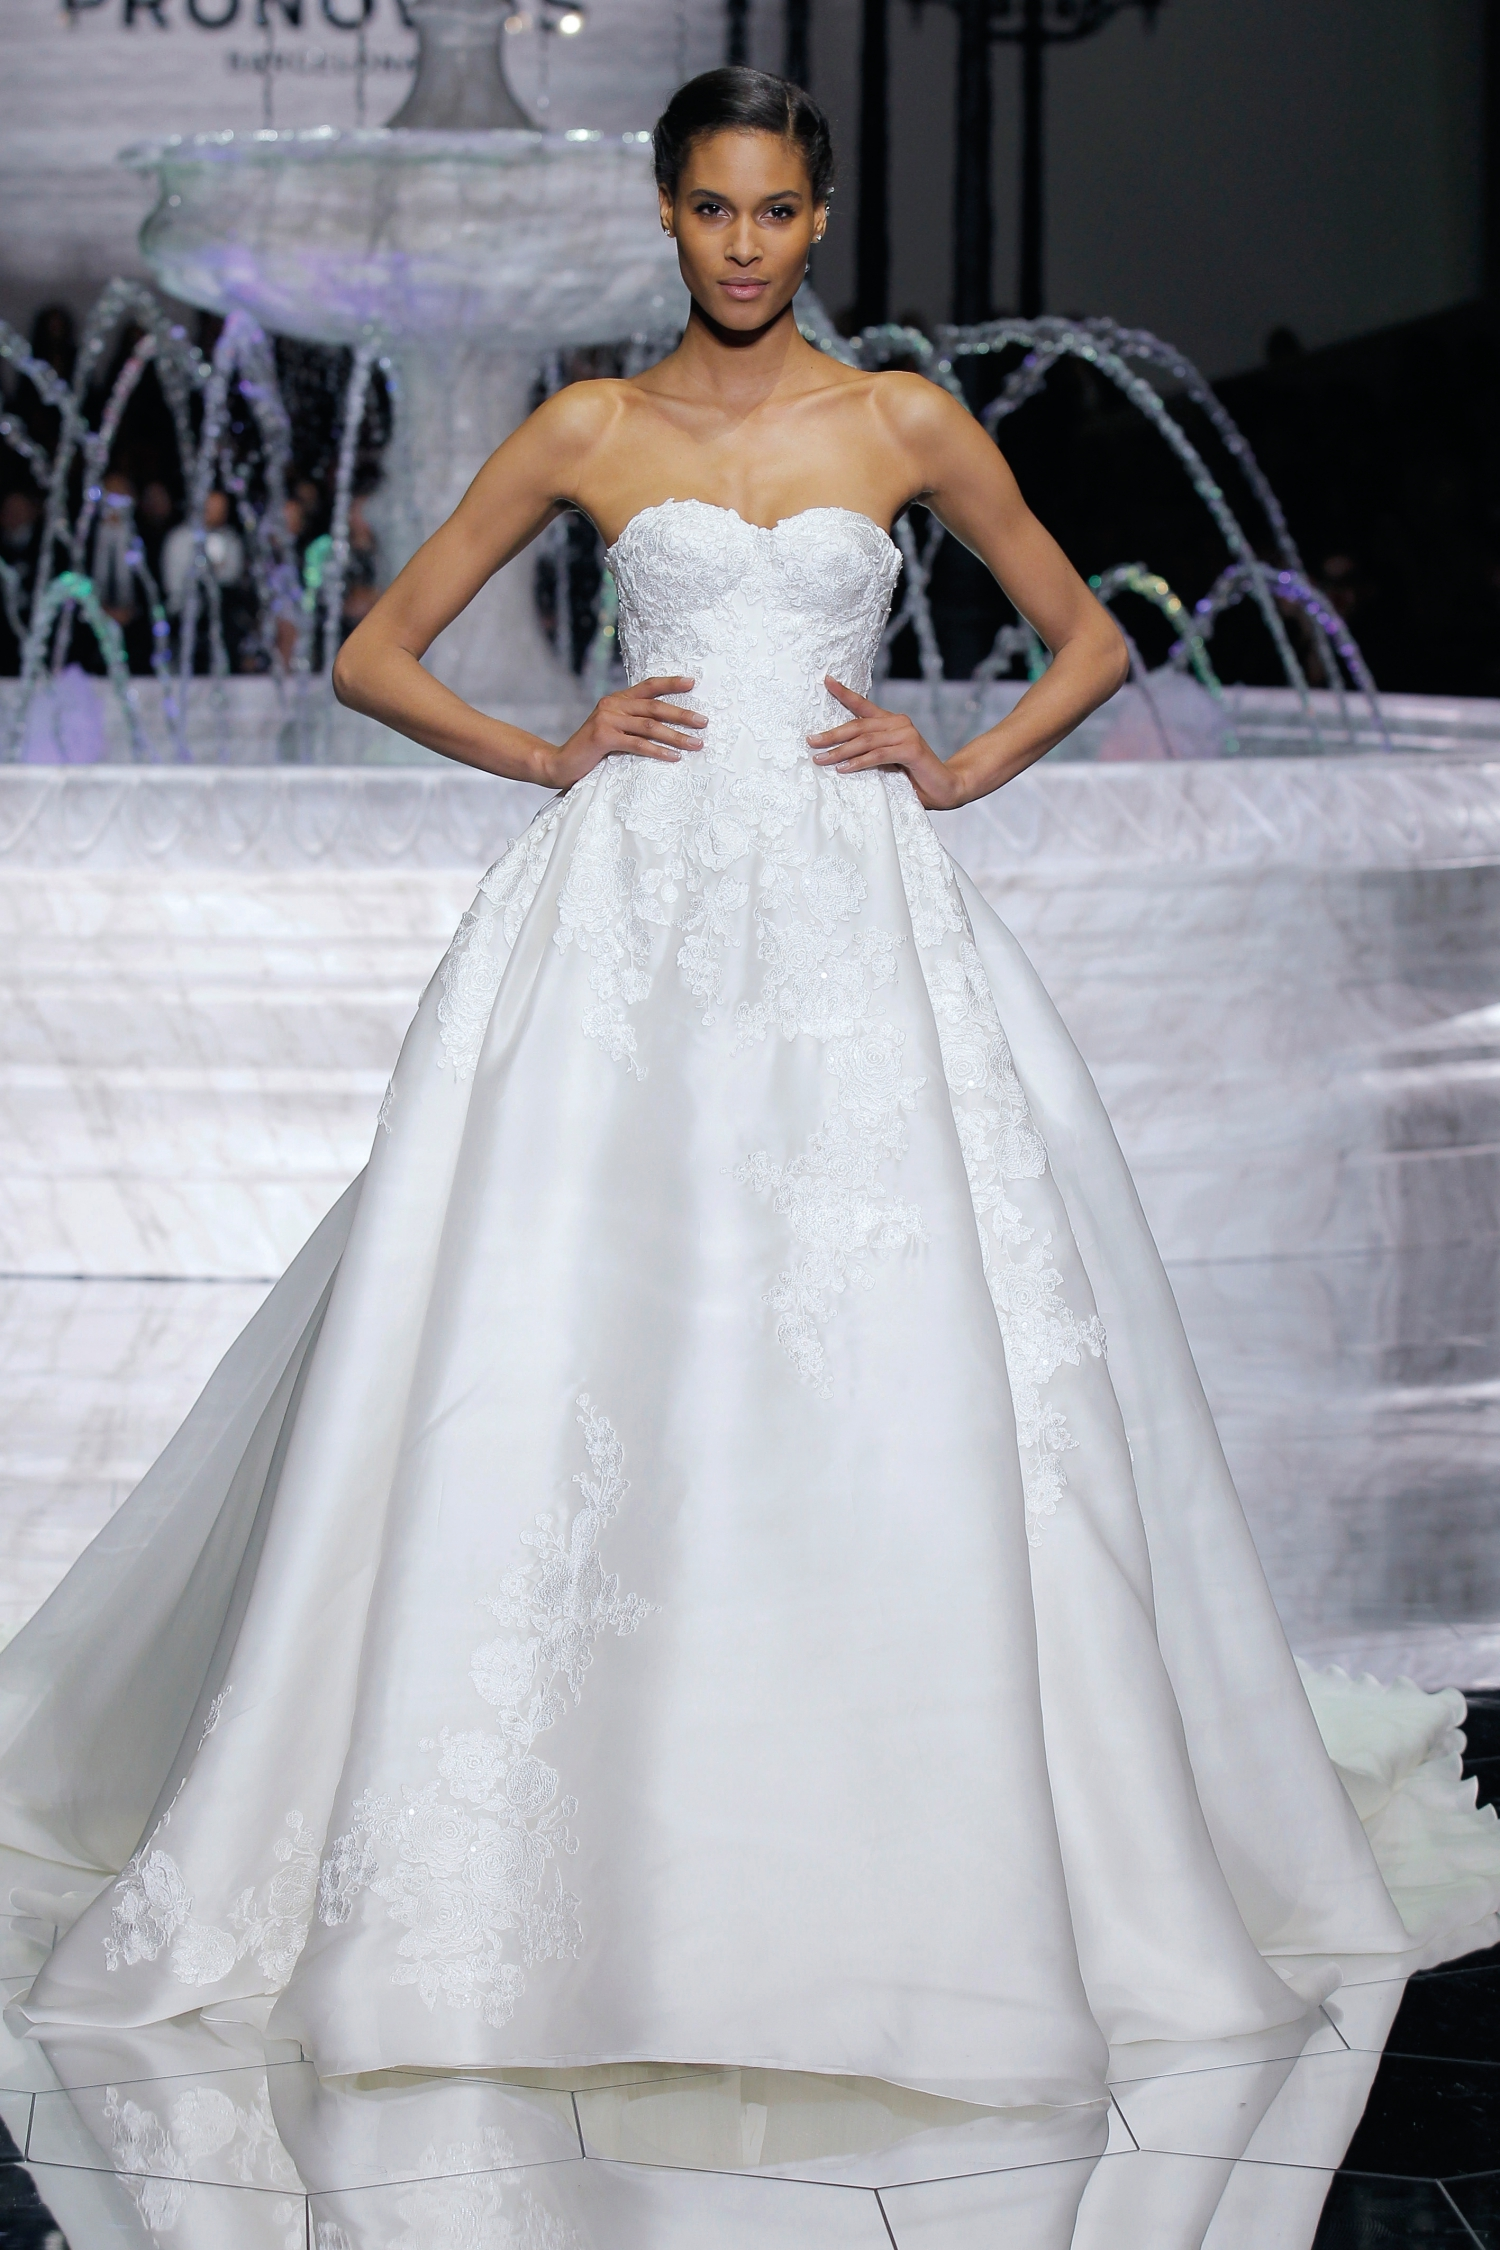 1-PRONOVIAS FASHION SHOW_Roxana